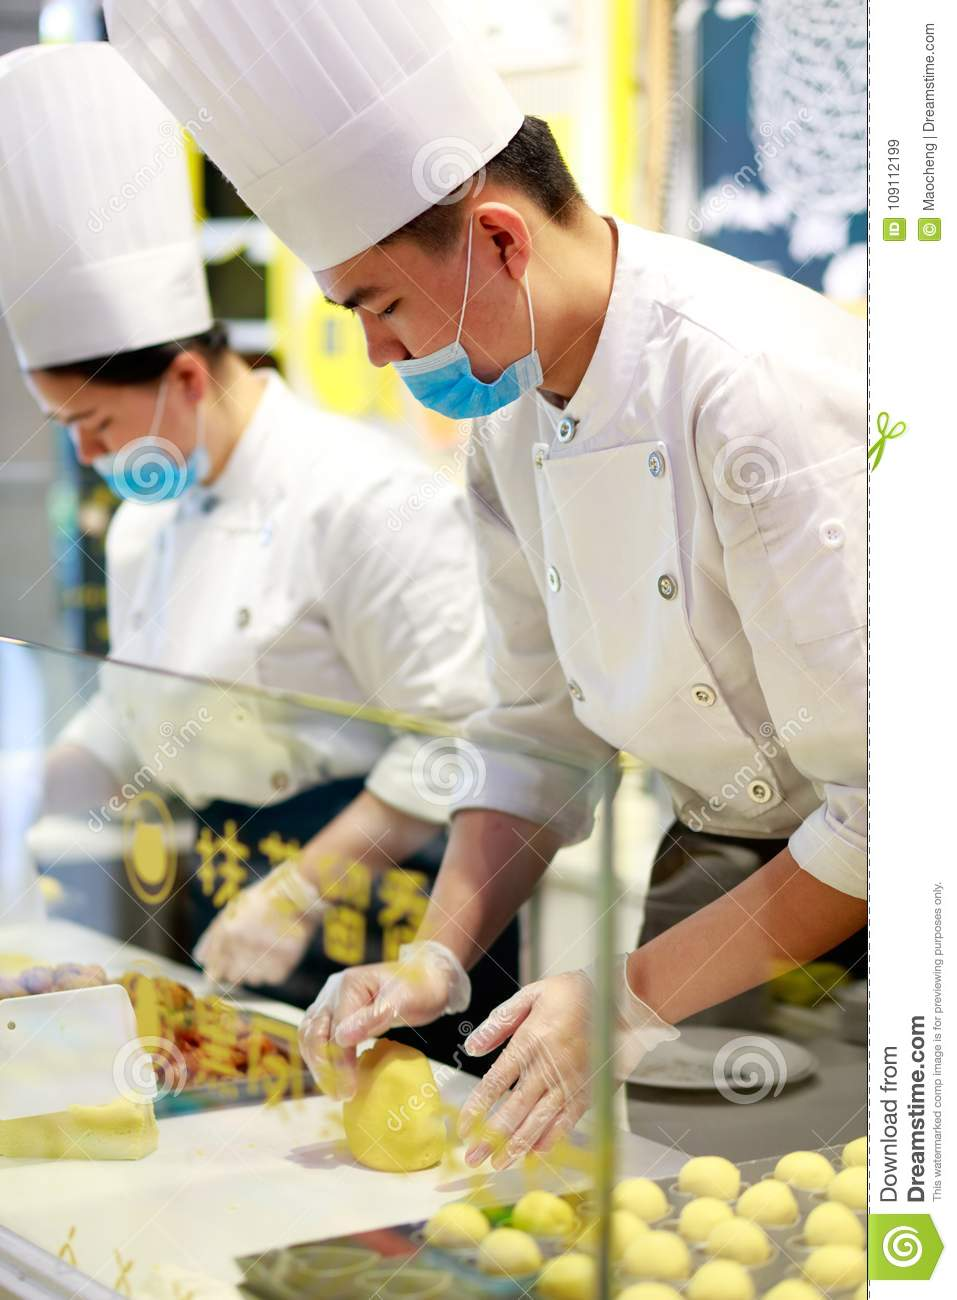 Chinese chef made pastry, srgb image